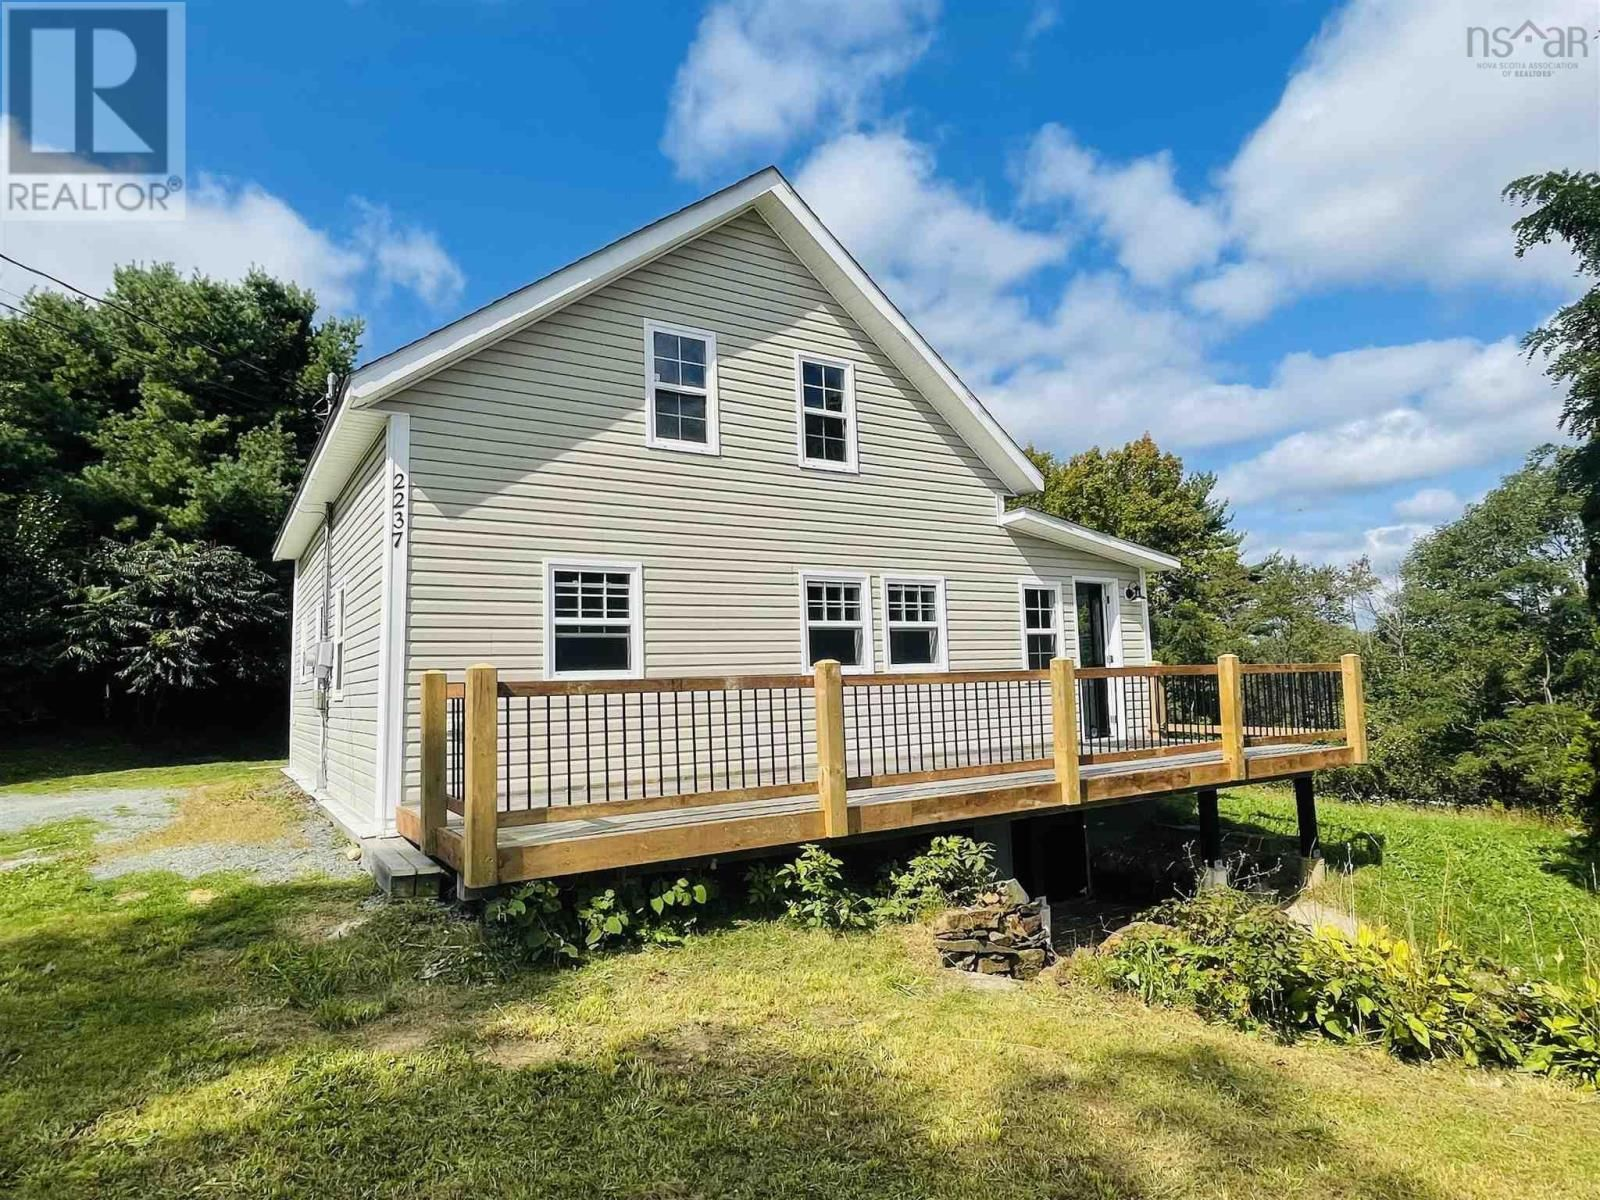 Main Photo: 2237 CONQUERALL Road in Conquerall Bank: House for sale : MLS®# 202124424